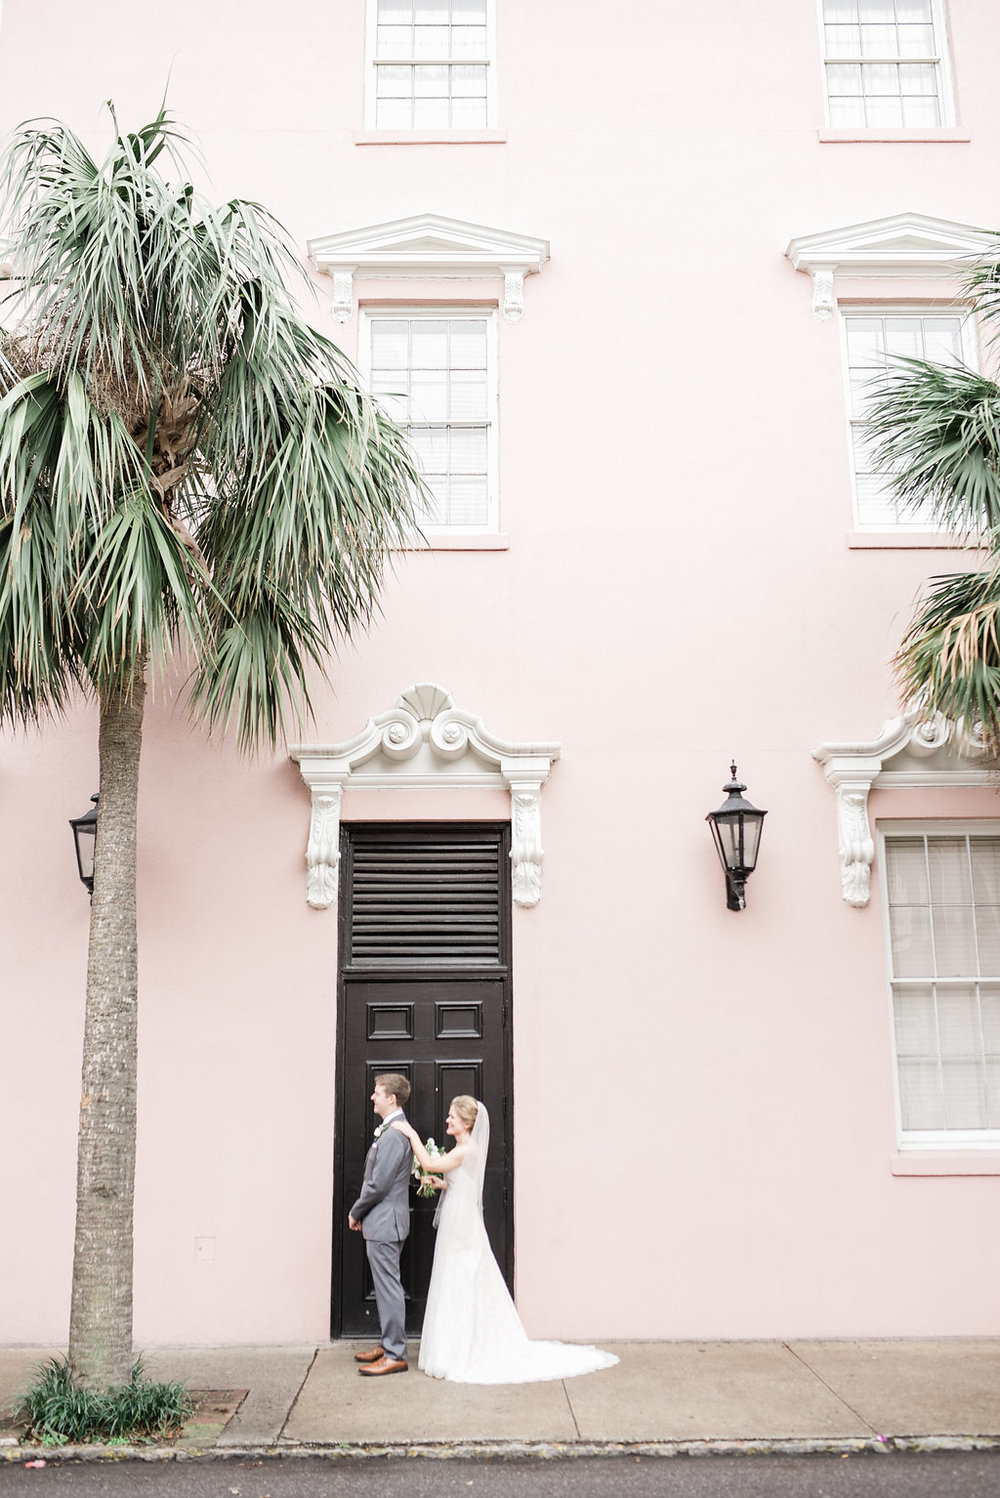 cannongreenweddingcharleston-abby&garett-rachelcraigphotography-0610.jpg